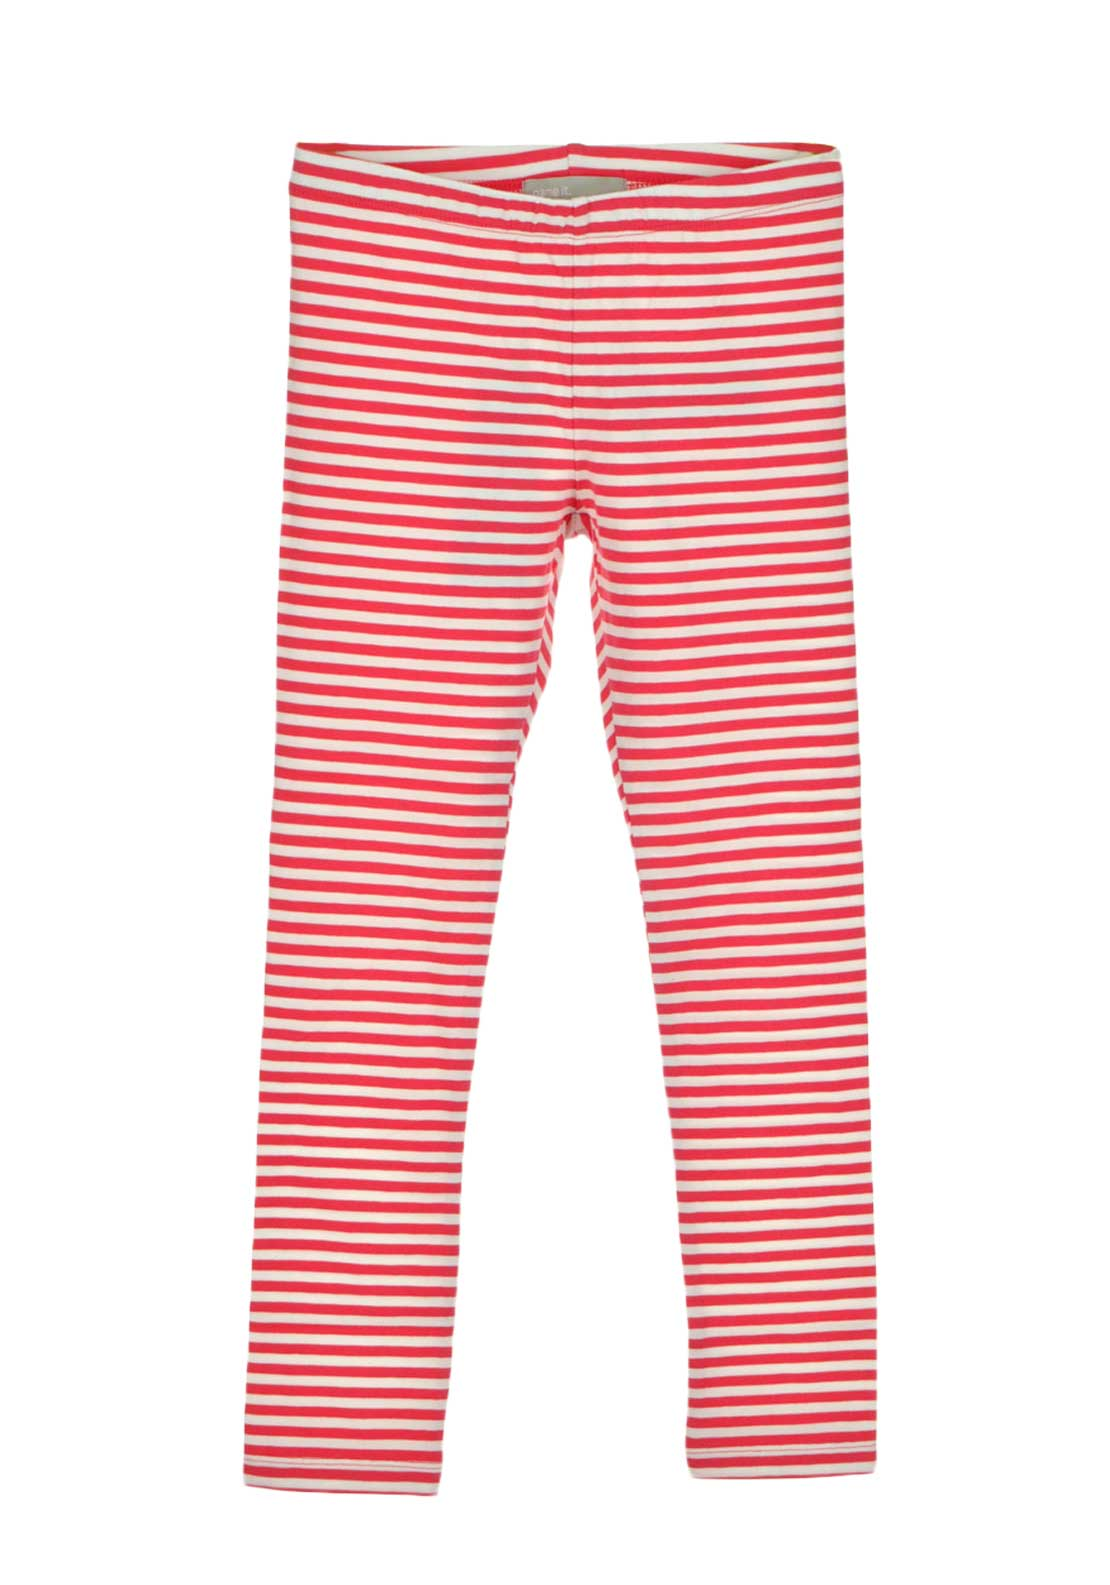 Name It Girls Striped Leggings, Pink and White